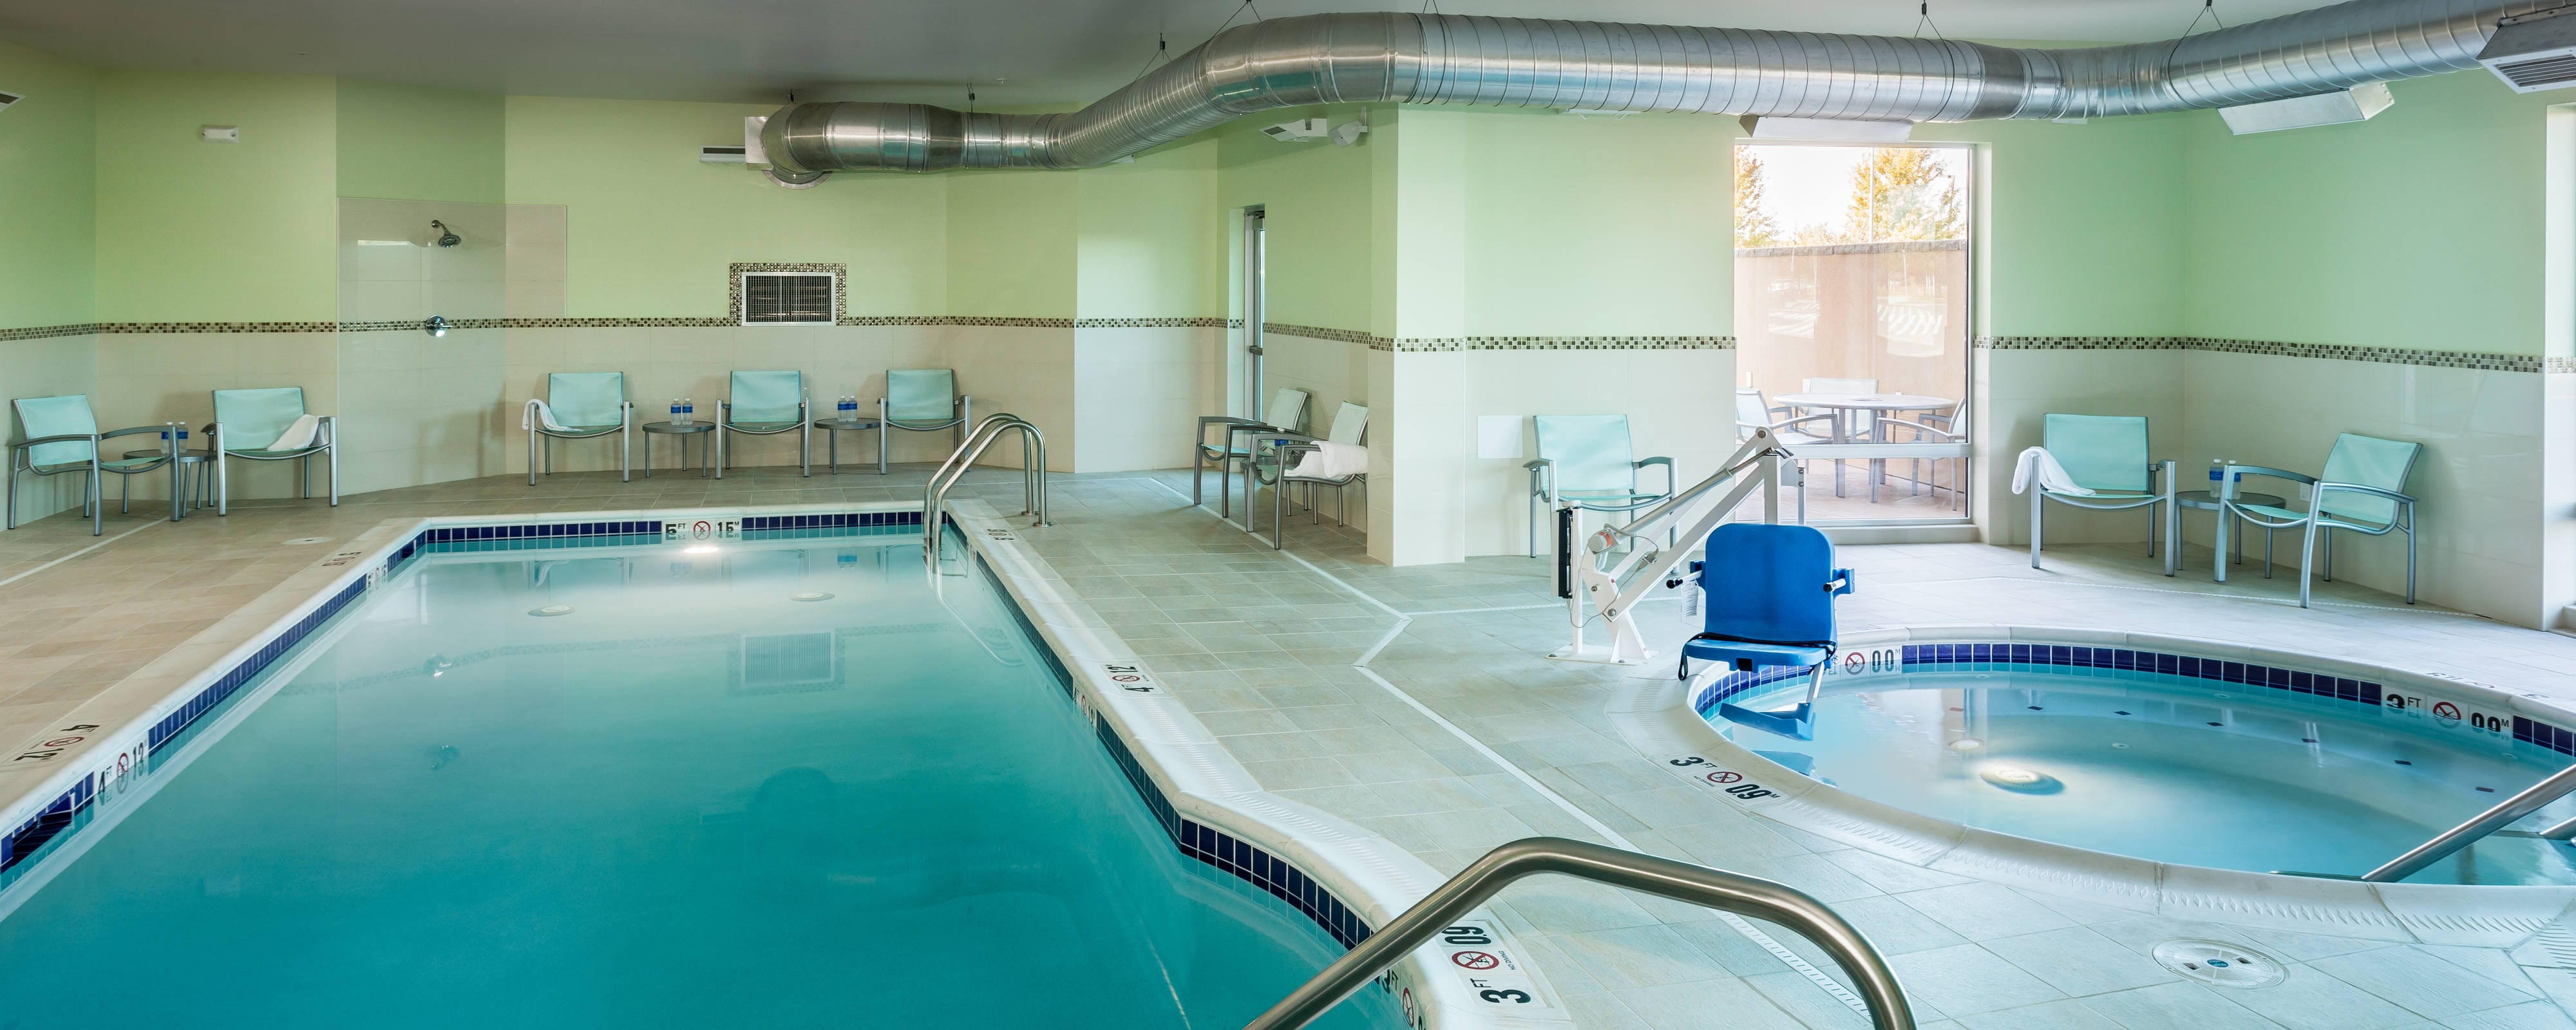 Indoor pool, hotel, Kennewick